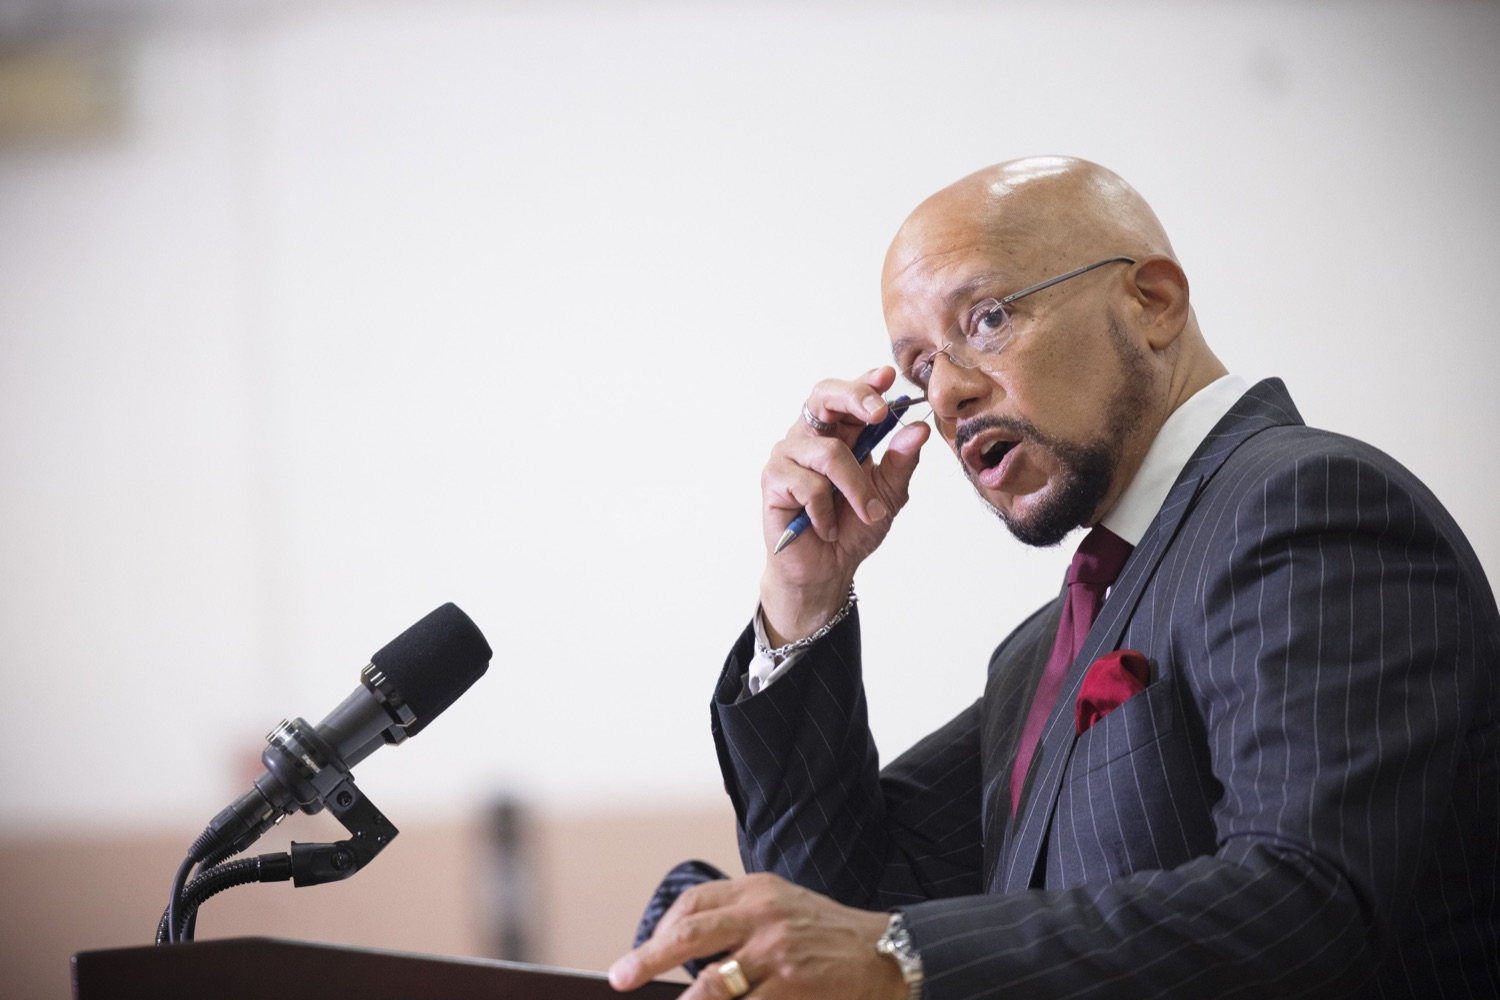 """<a href=""""https://filesource.wostreaming.net/commonwealthofpa/photo/20078_gov_gunviolence_dz_008.jpg"""" target=""""_blank"""">⇣Download Photo<br></a>Pennsylvania State Senator Vince Hughes speaking with the press.  Governor Tom Wolf today joined state lawmakers to remind communities and organizations that $24 million in state funding is available to address community violence.  Philadelphia, PA - September 23, 2021"""